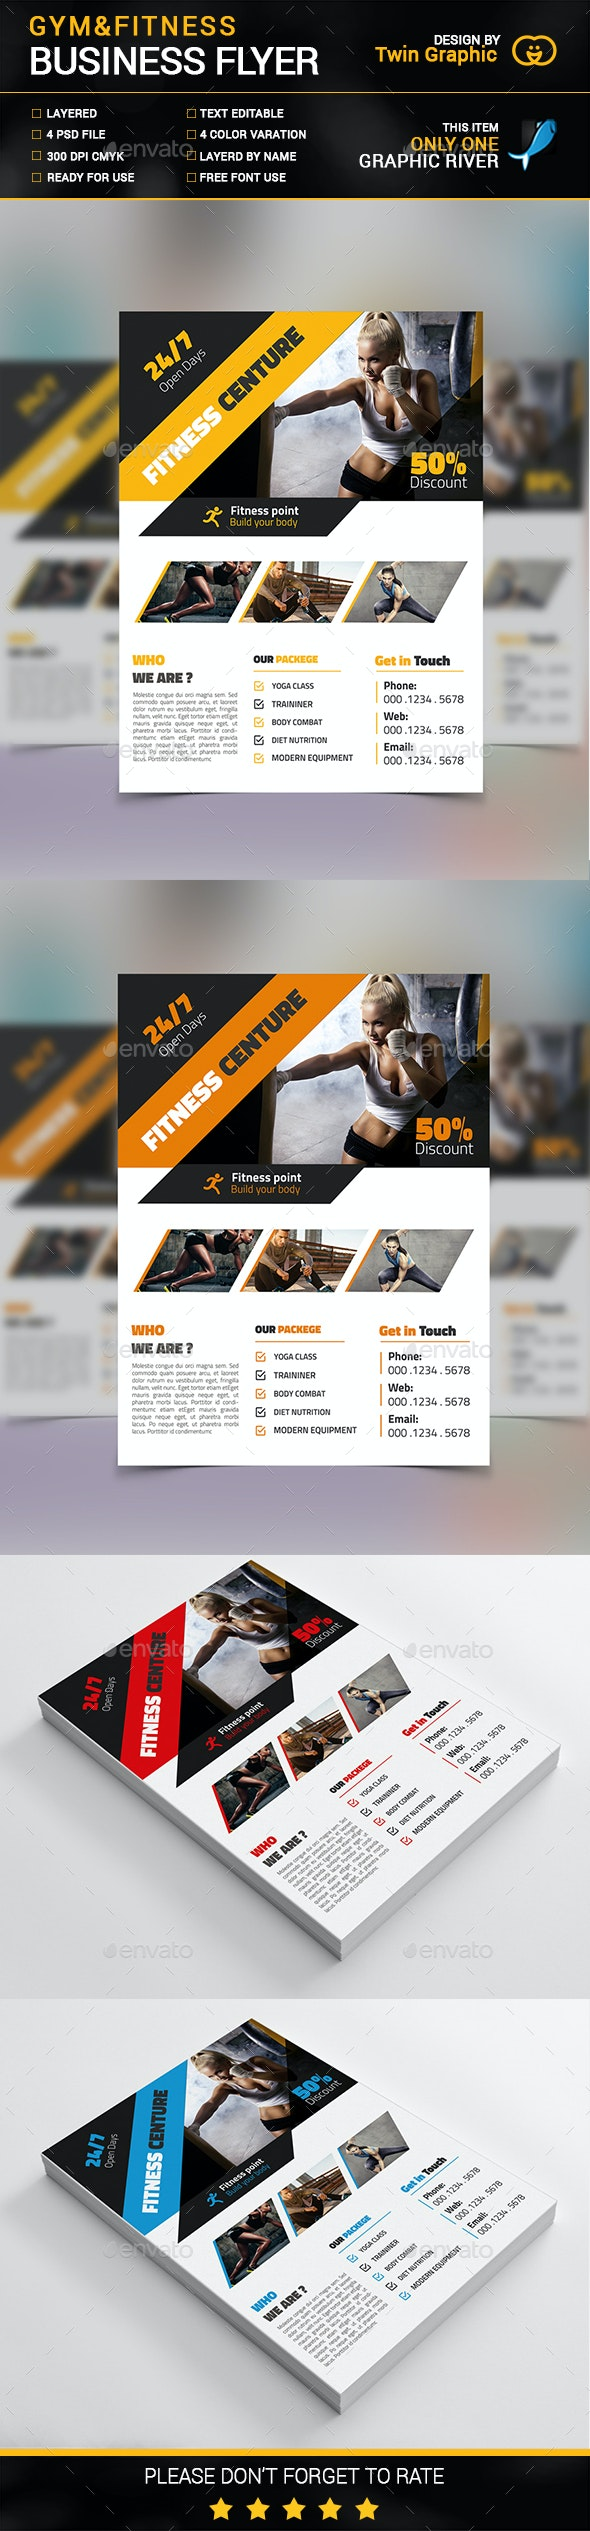 Gym & Fitness Business Flyer Design - Sports Events